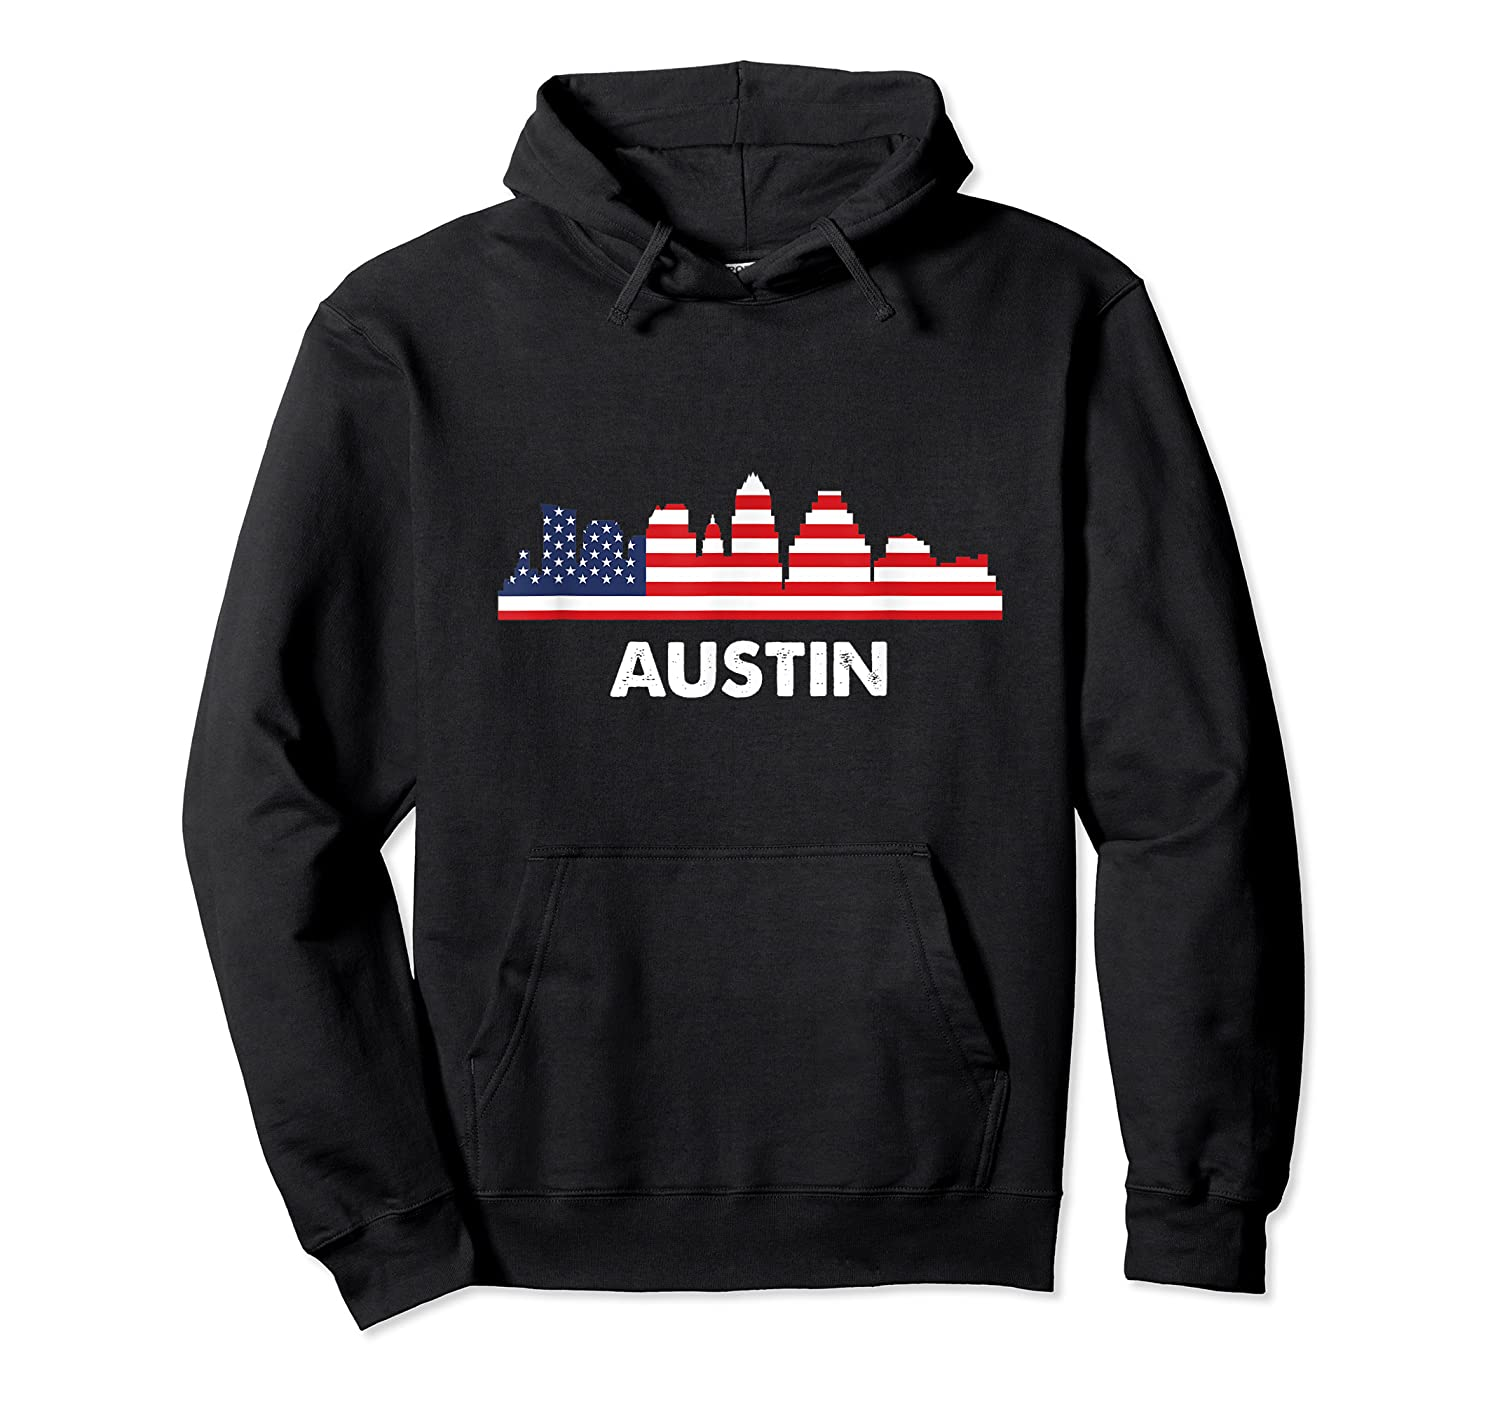 Austin City American Flag Shirt 4th Of July Shirts Unisex Pullover Hoodie